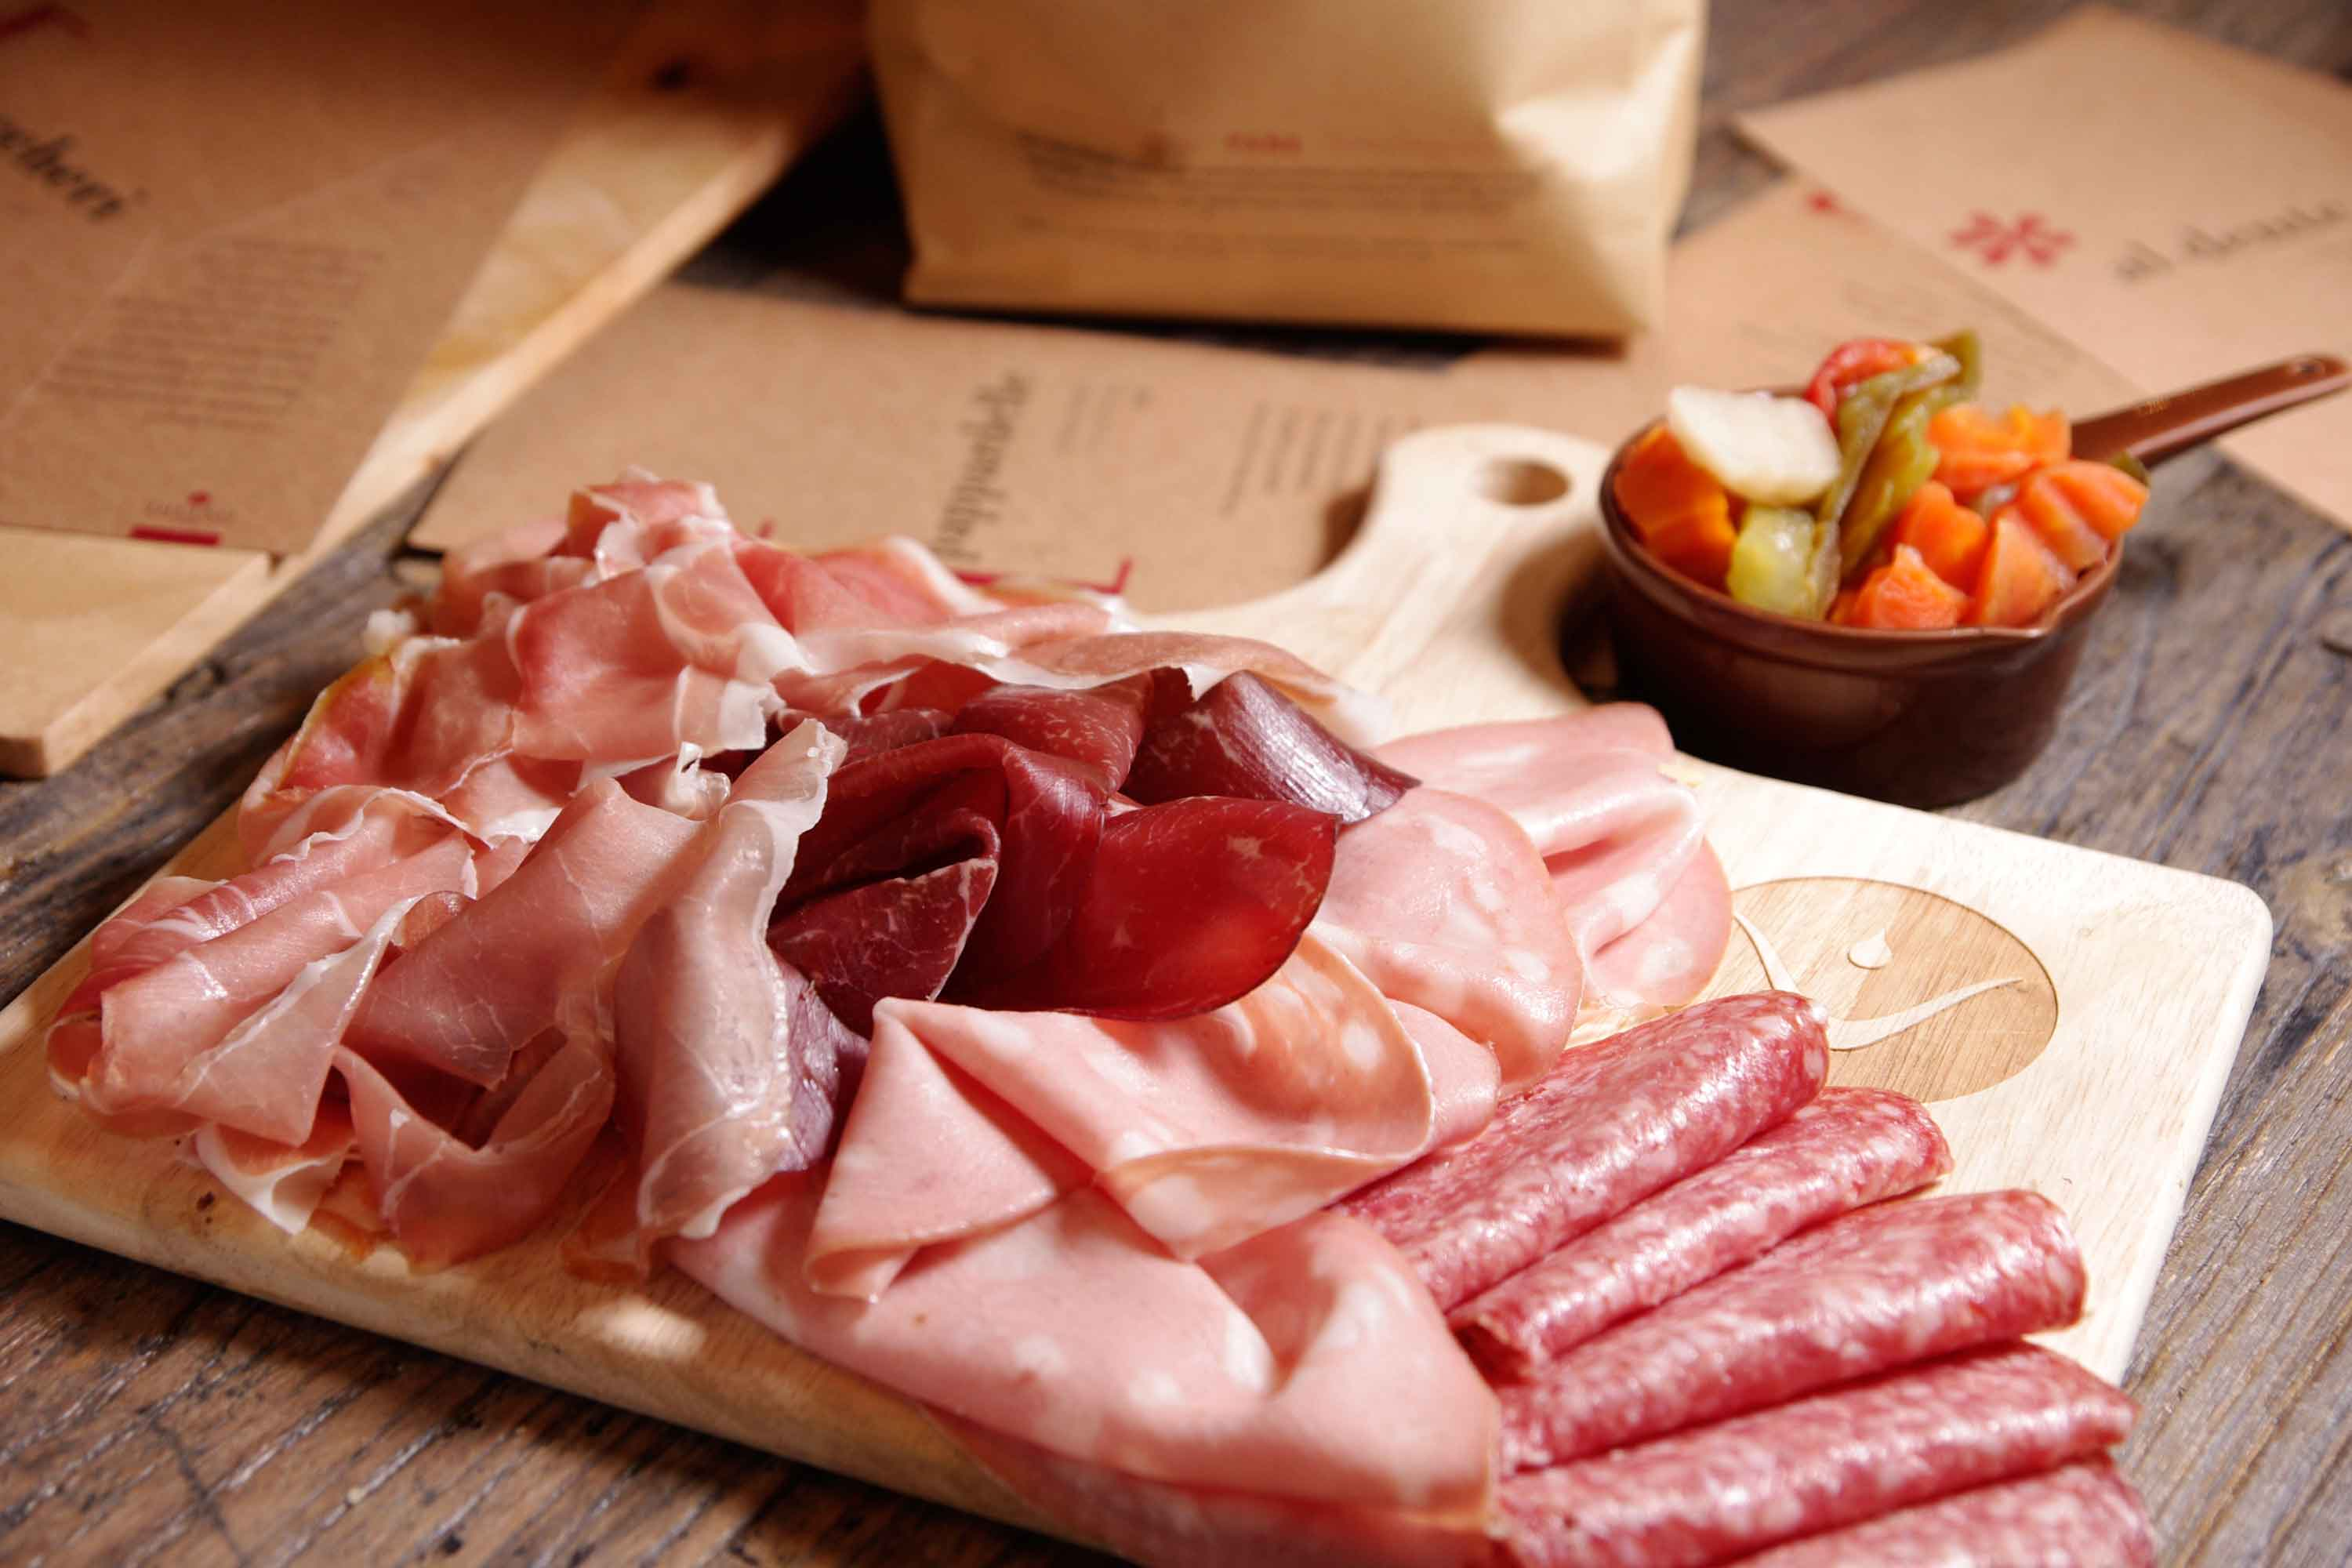 DiVino Patio - 5 types of cold cuts with giardiniera